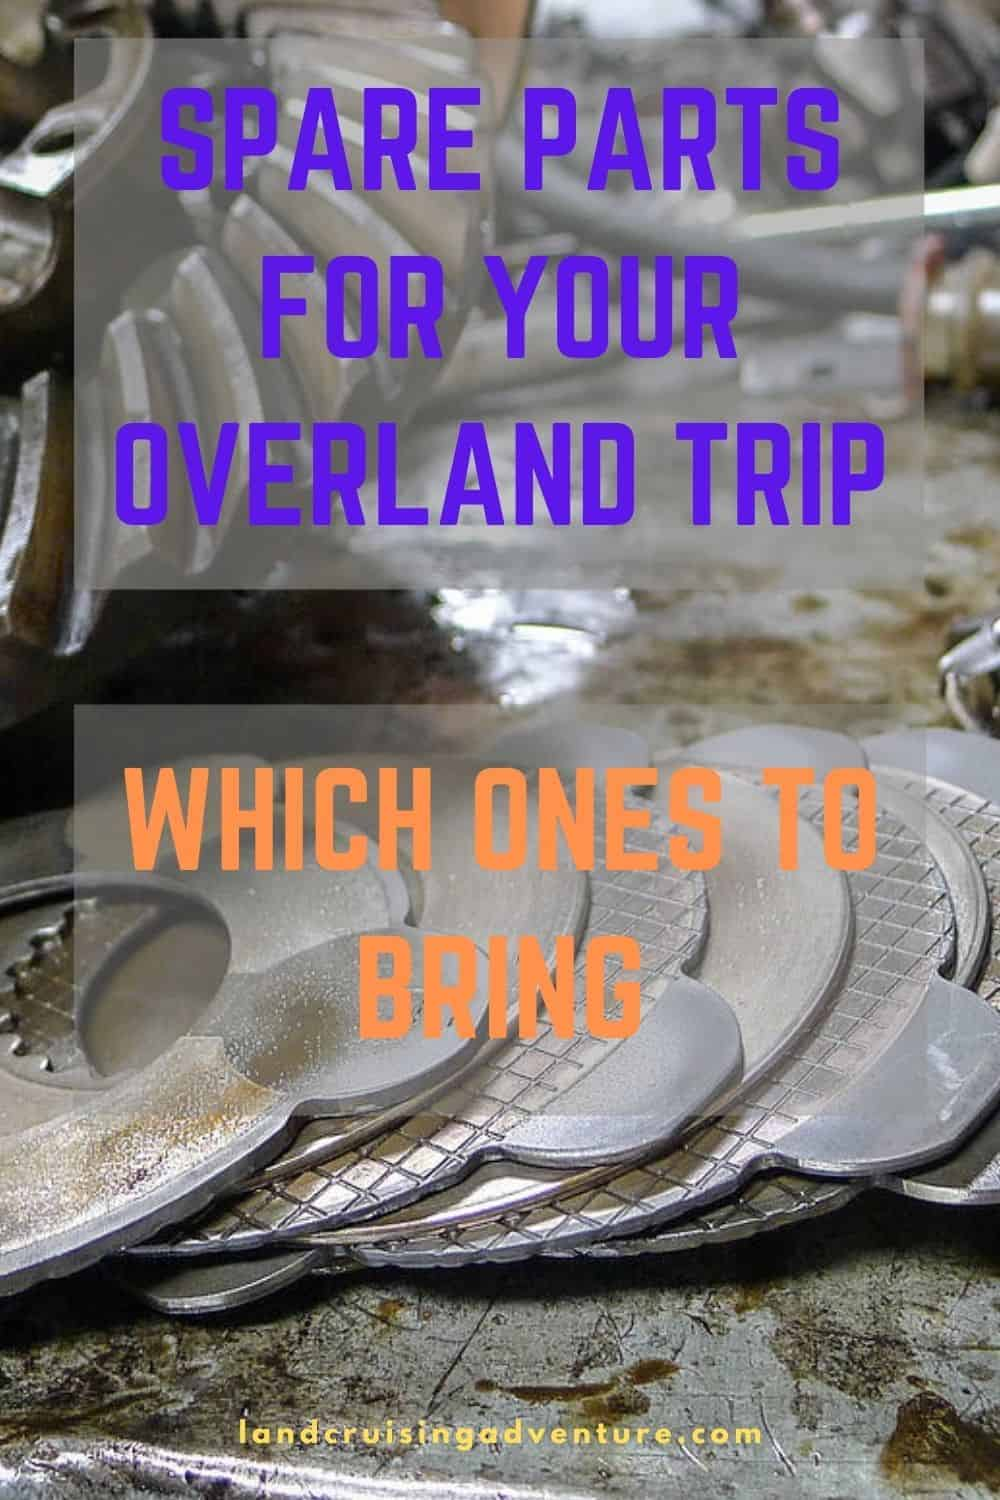 Overland trip - spare parts